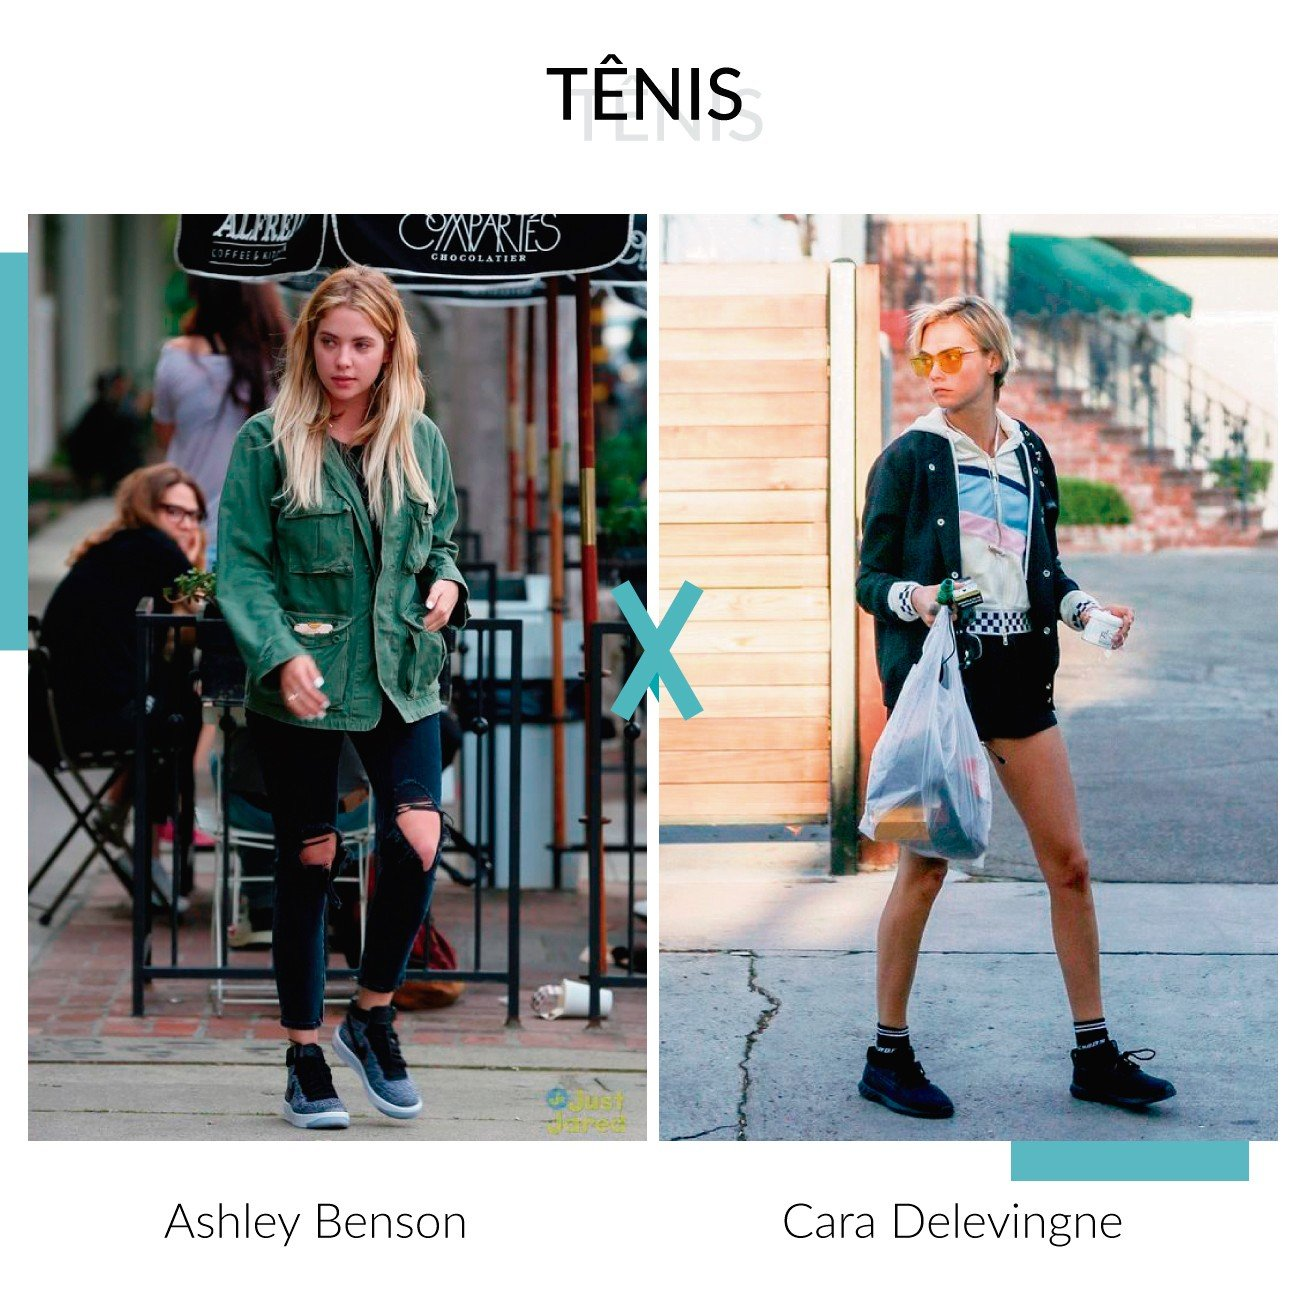 Tnis ashley benson e cara delevingne